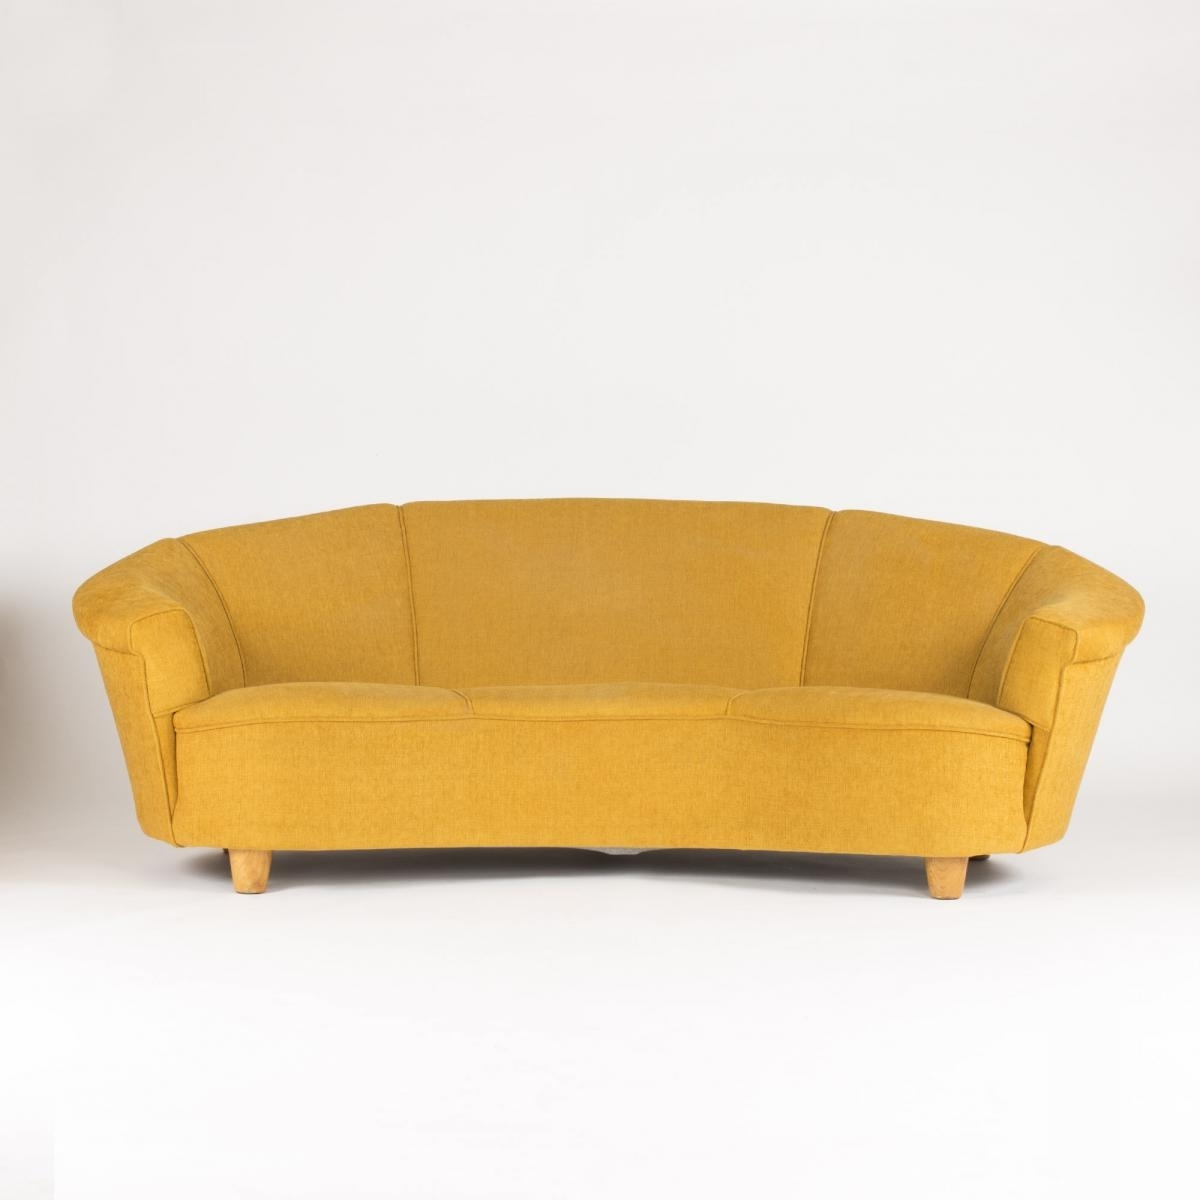 Well Liked Swedish Sofa, 1930s For Sale At Pamono Pertaining To 1930s Sofas (View 15 of 20)